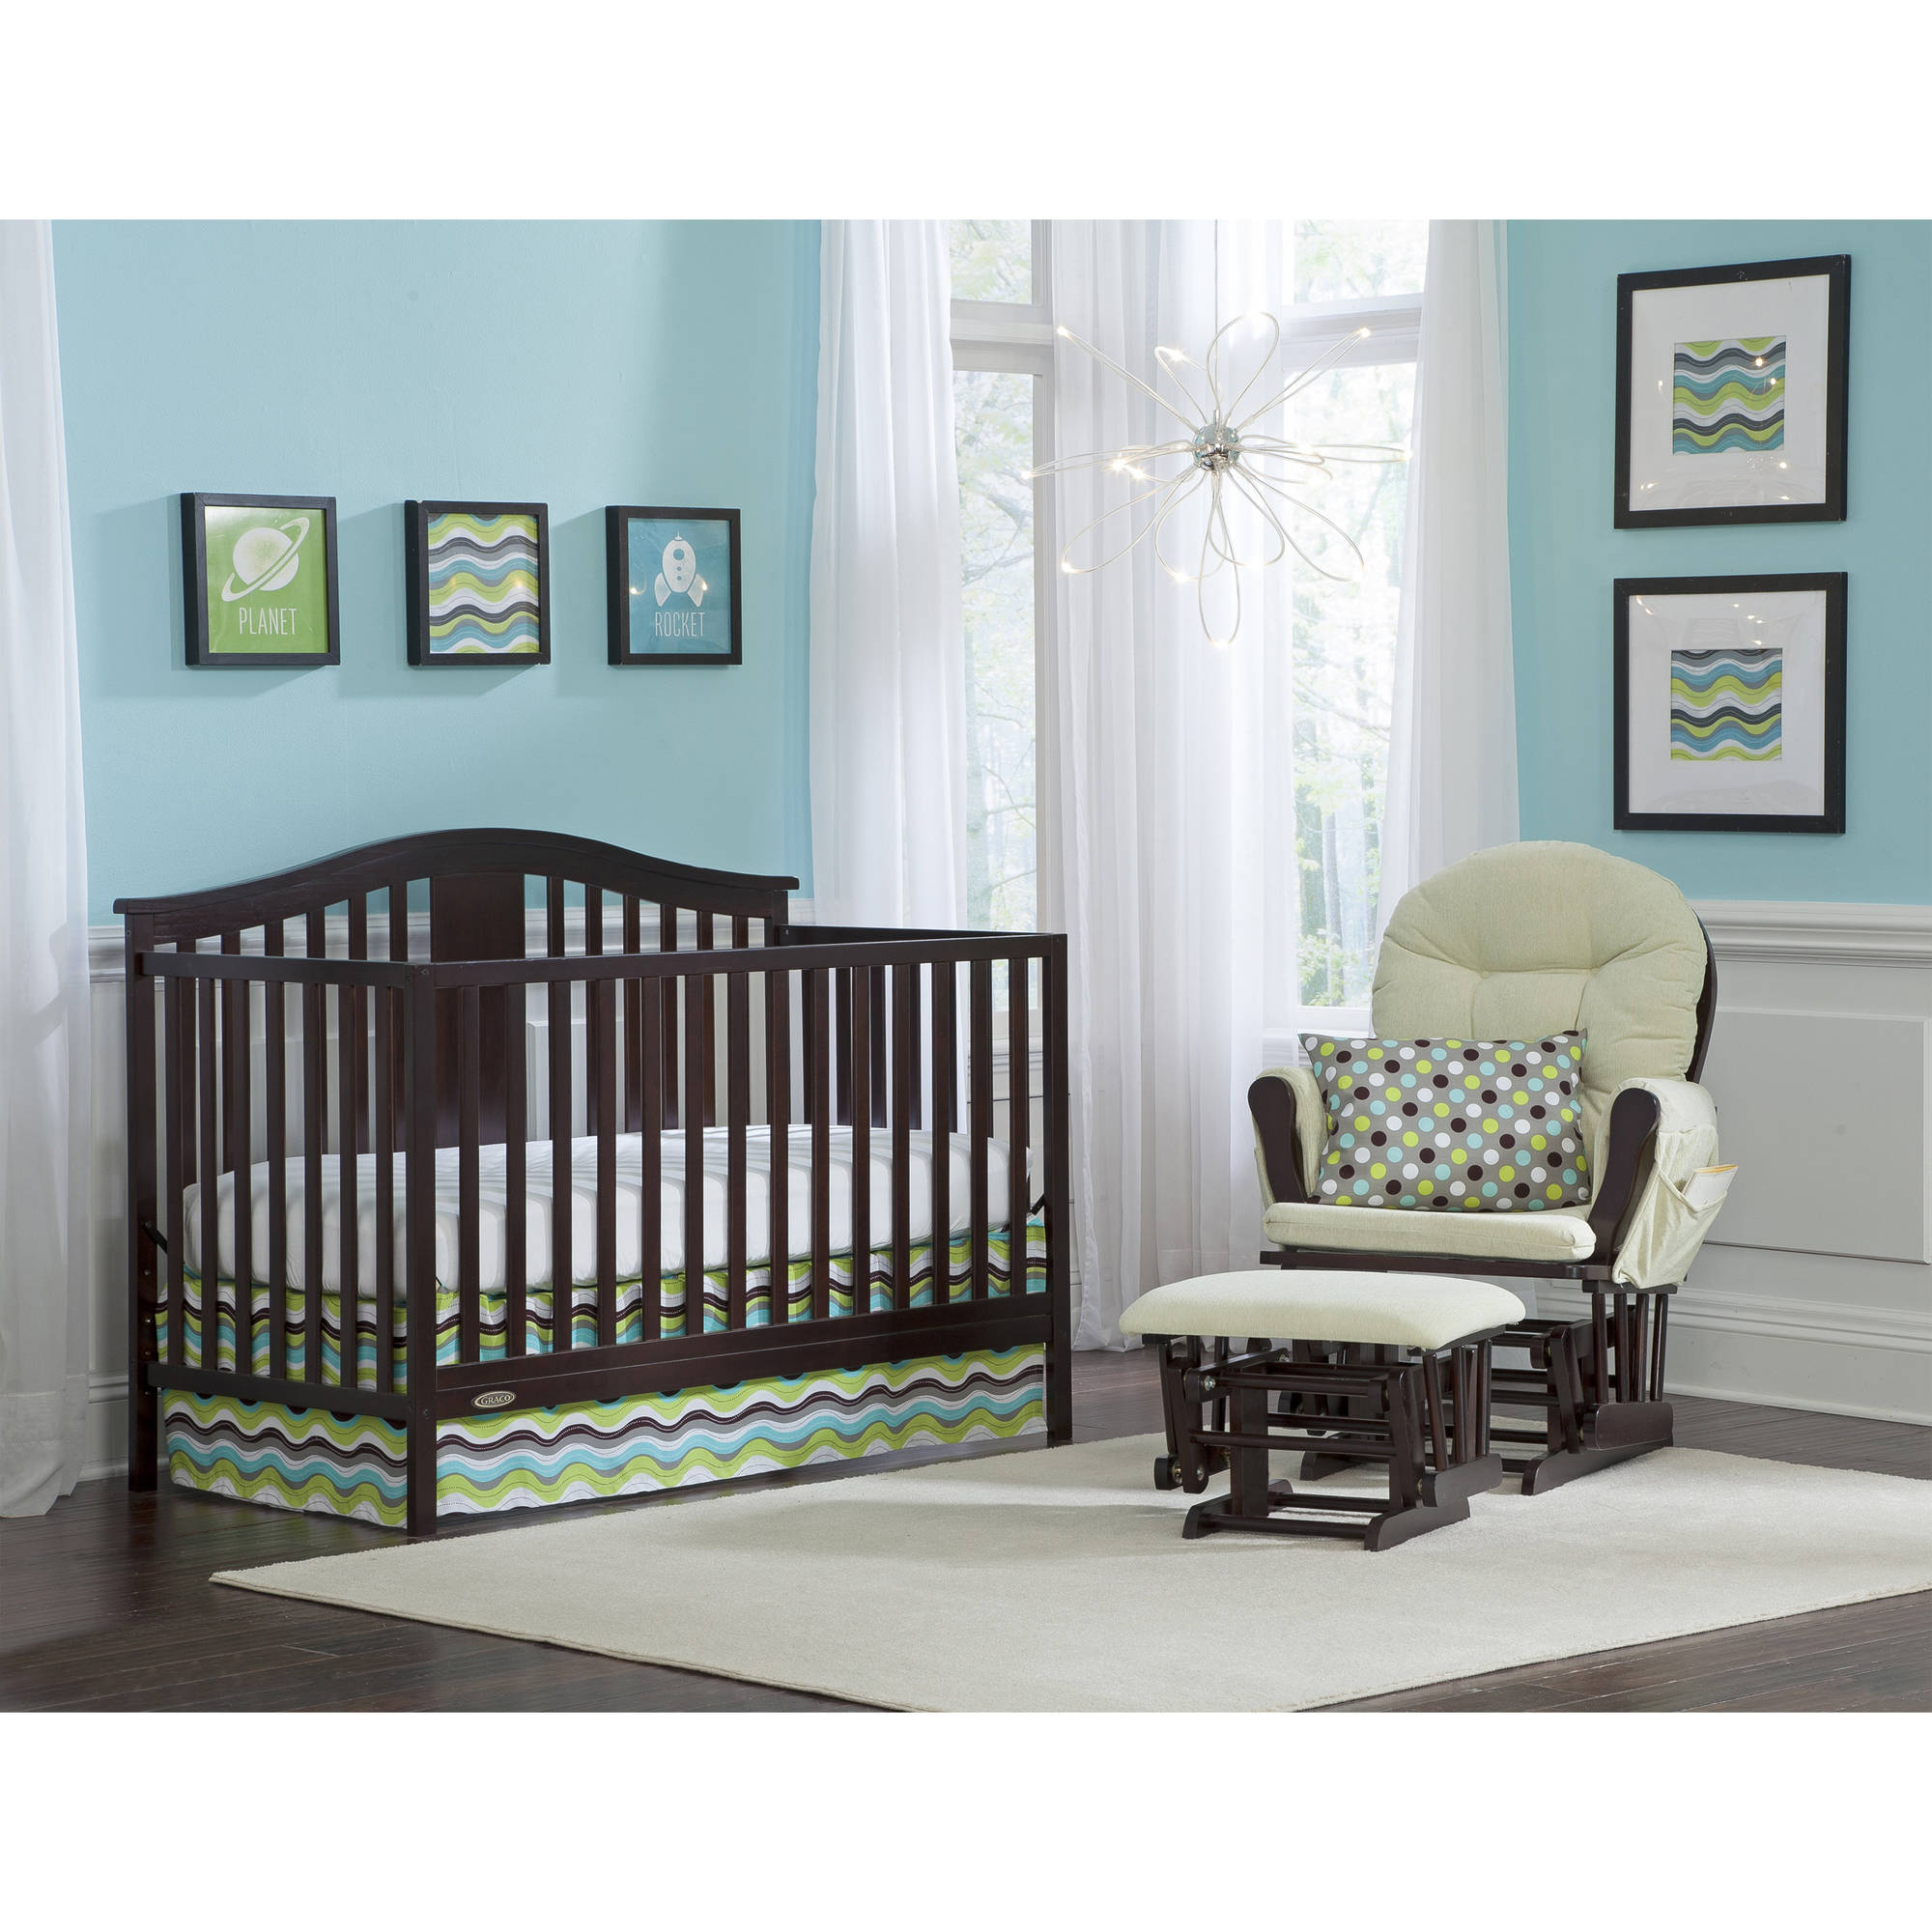 Graco Solano 4-in-1 Convertible Crib and Bonus Mattress, Multiple Colors